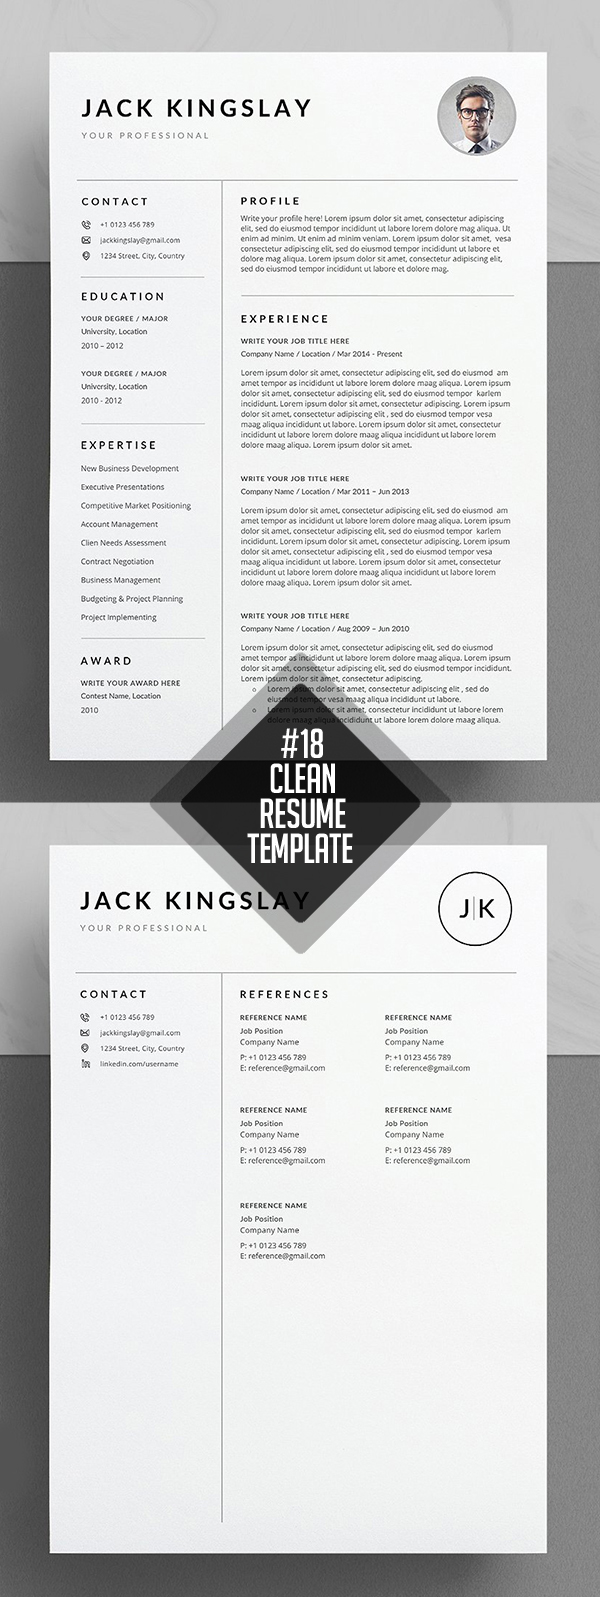 Clean And Minimal Resume Templates  Design  Graphic Design Junction